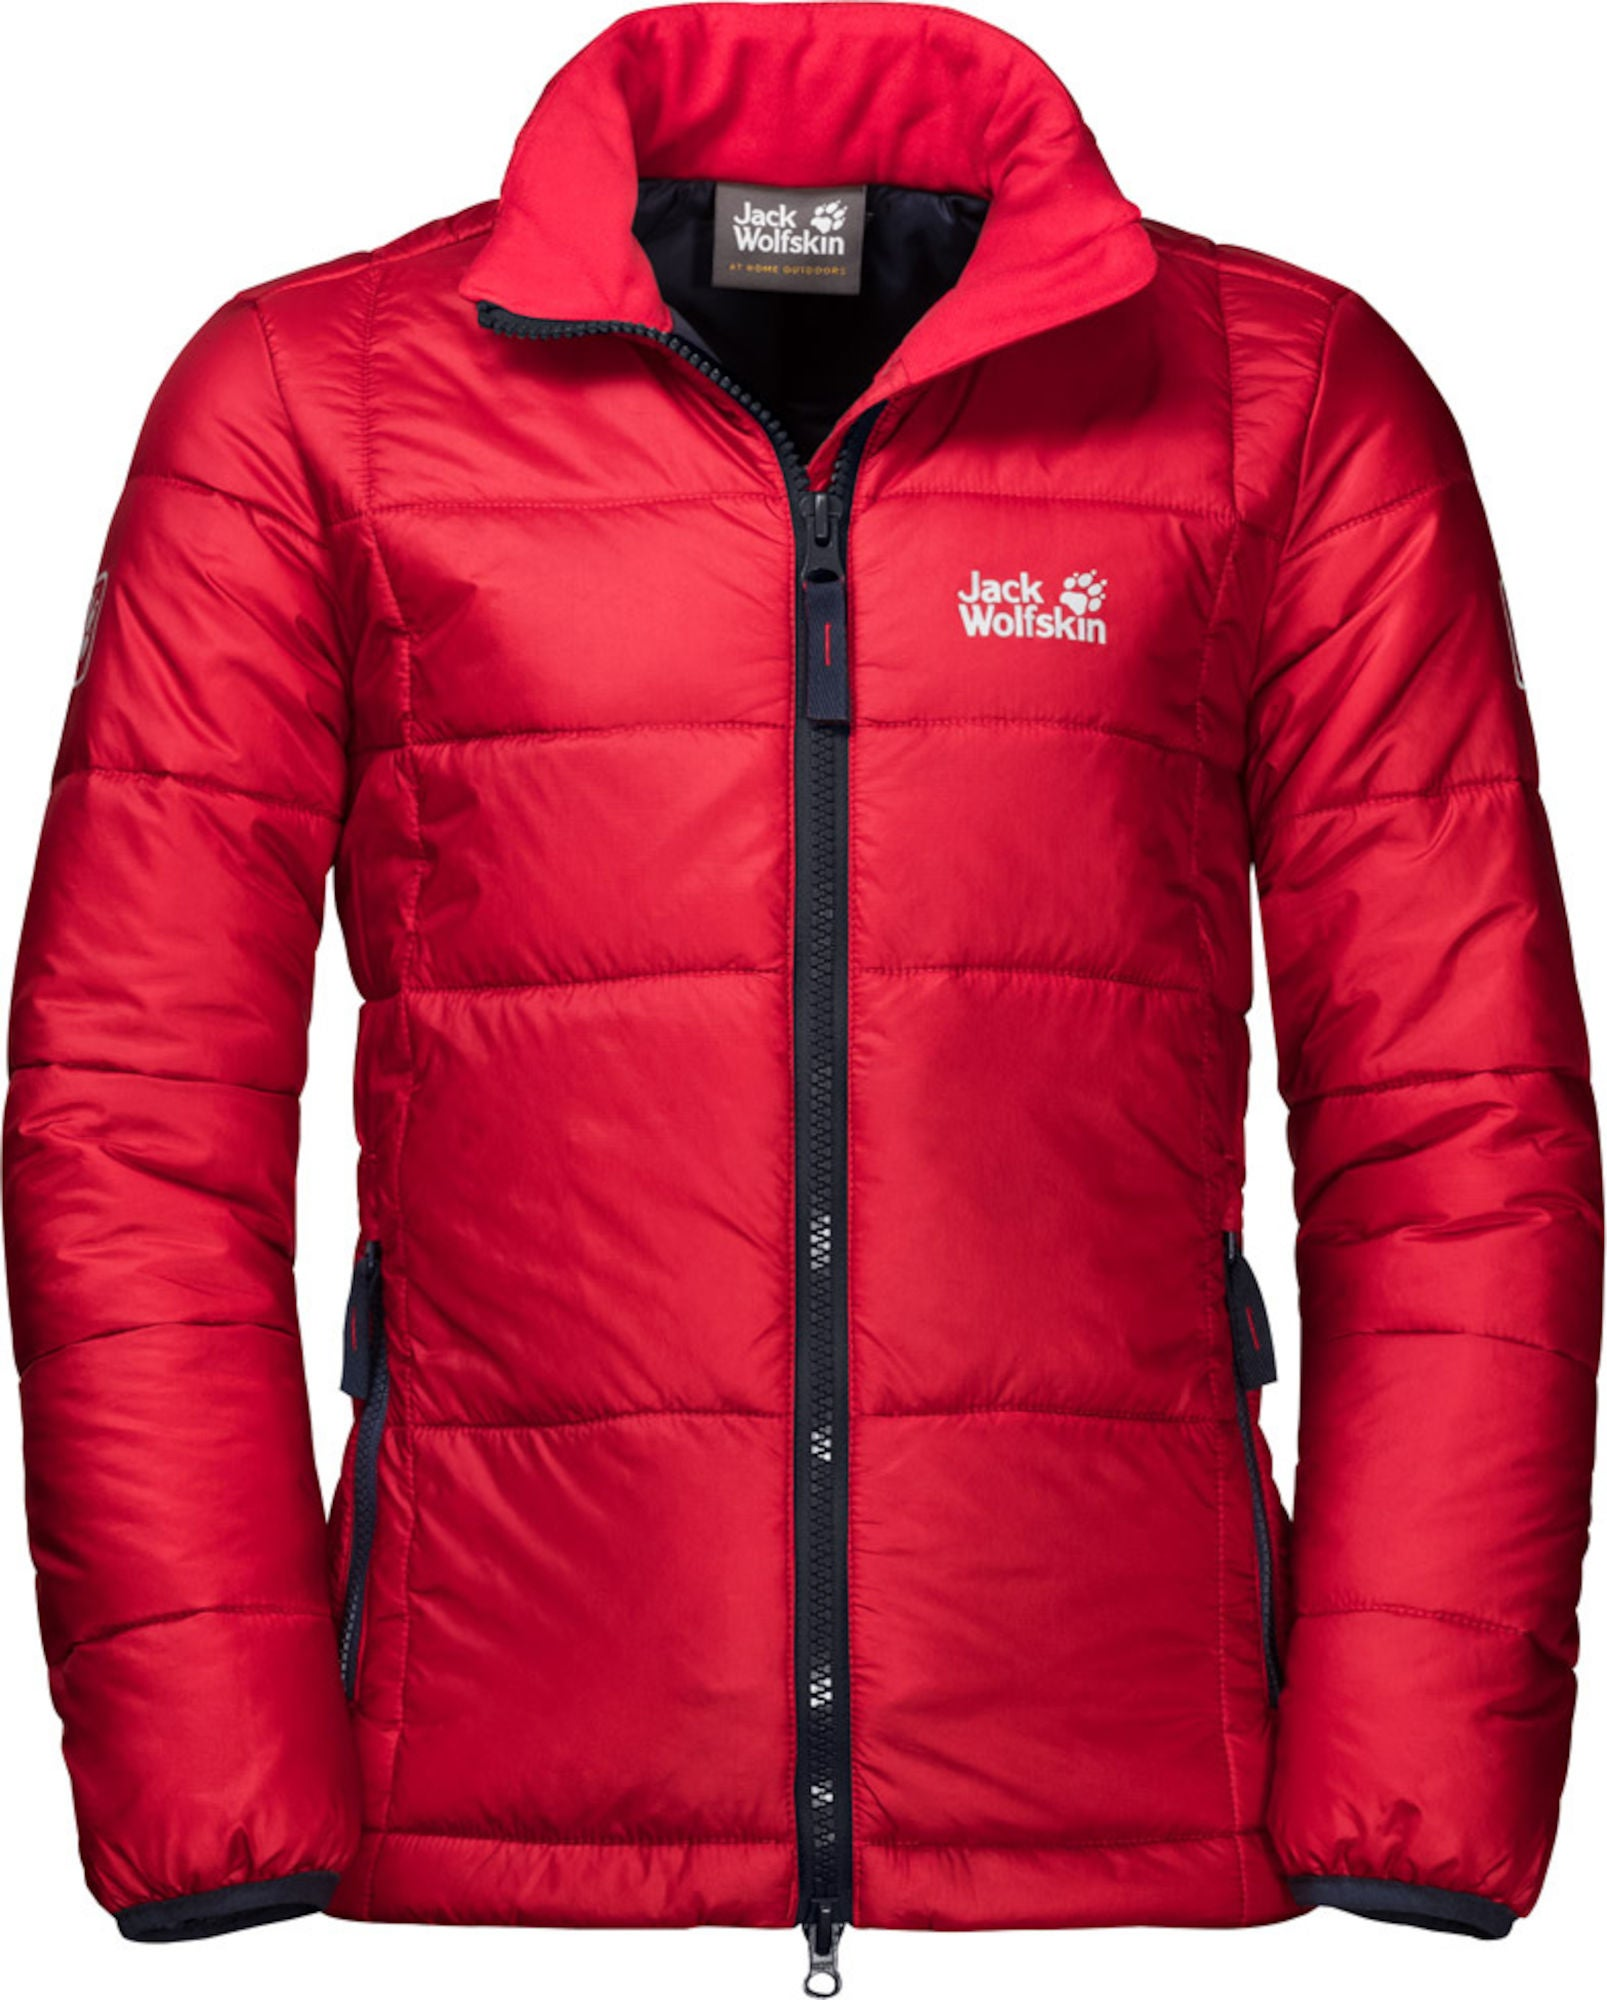 Jack Wolfskin Argon Jacka, Red Lacquer 92